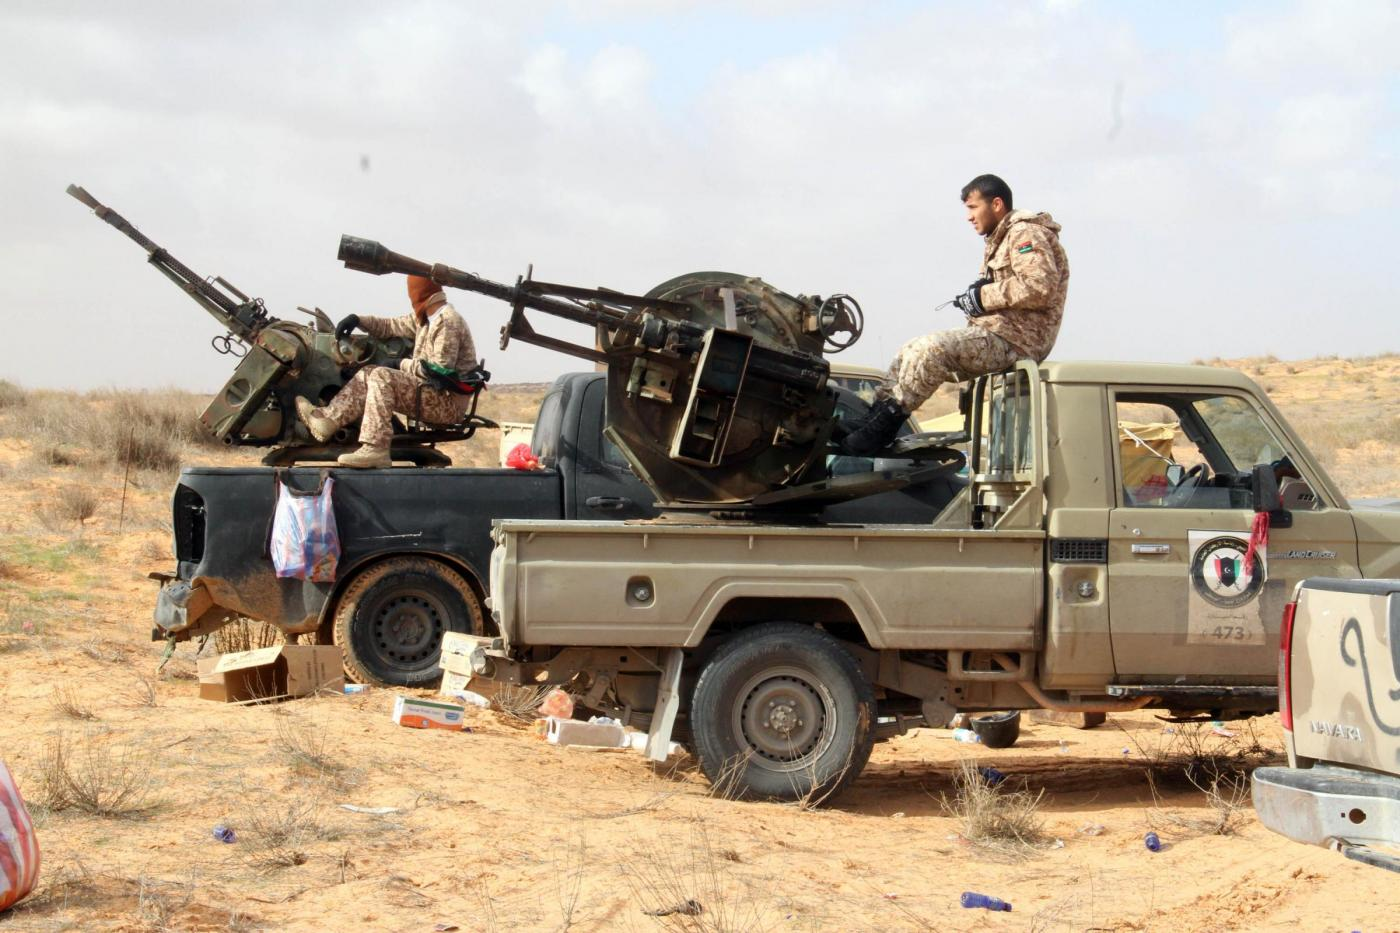 (150105) -- TRIPOLI, Jan. 5, 2015 (Xinhua) -- Some Libya Dawn fighters have a rest near Wetia airbase, Libya, on Jan. 5, 2015. Clashes continued between Libya Dawn fighters and pro-government forces on Monday near Wetia airbase, some 170 kilometers southwest of the capital Tripoli.(Xinhua/Hamza Turkia)